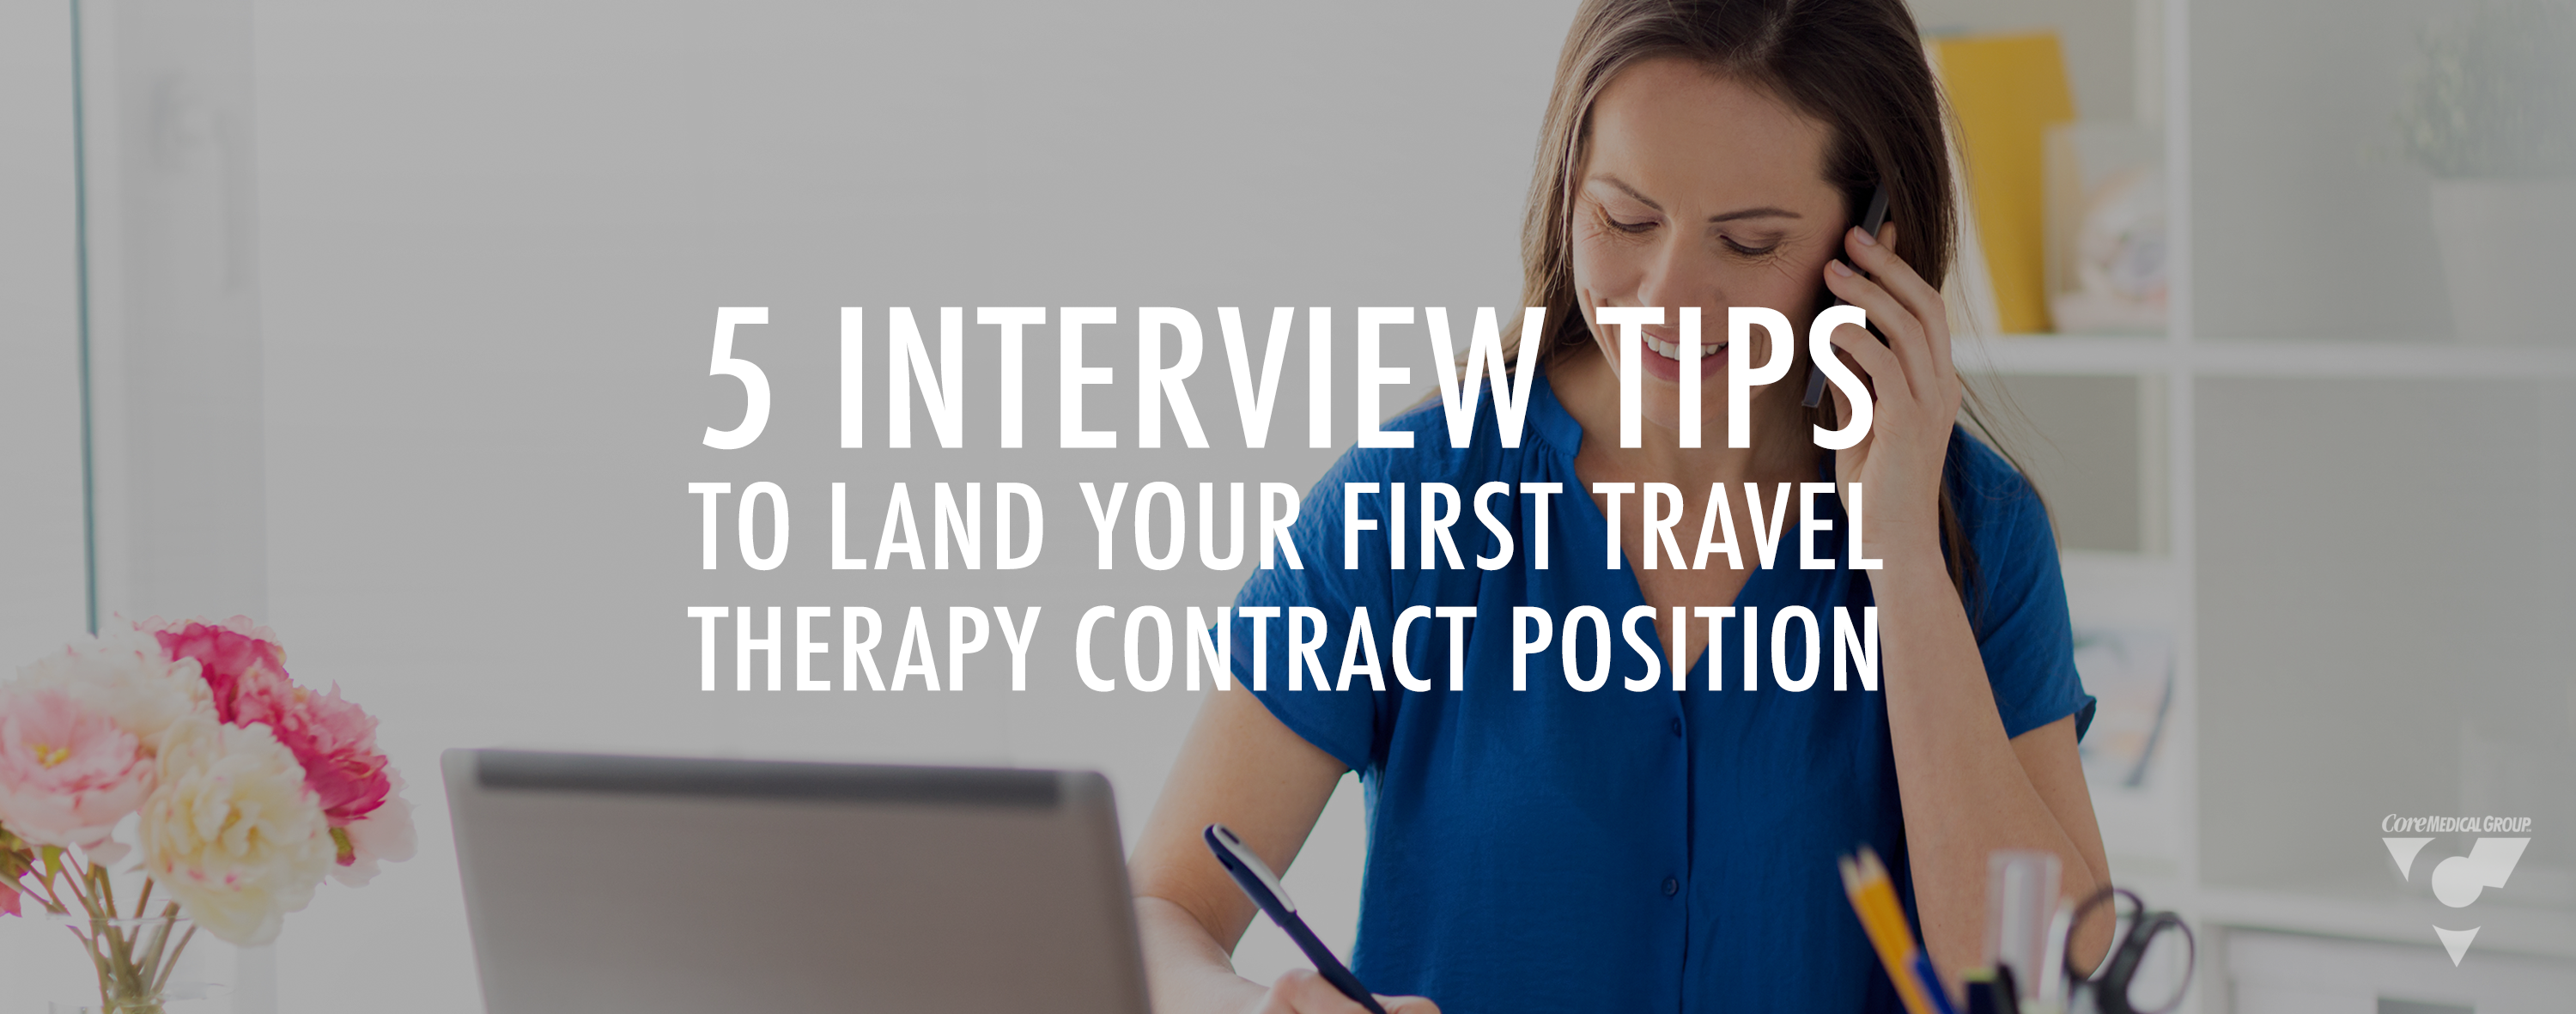 5 Interview Tips to Land Your First Travel Therapy Contract Position